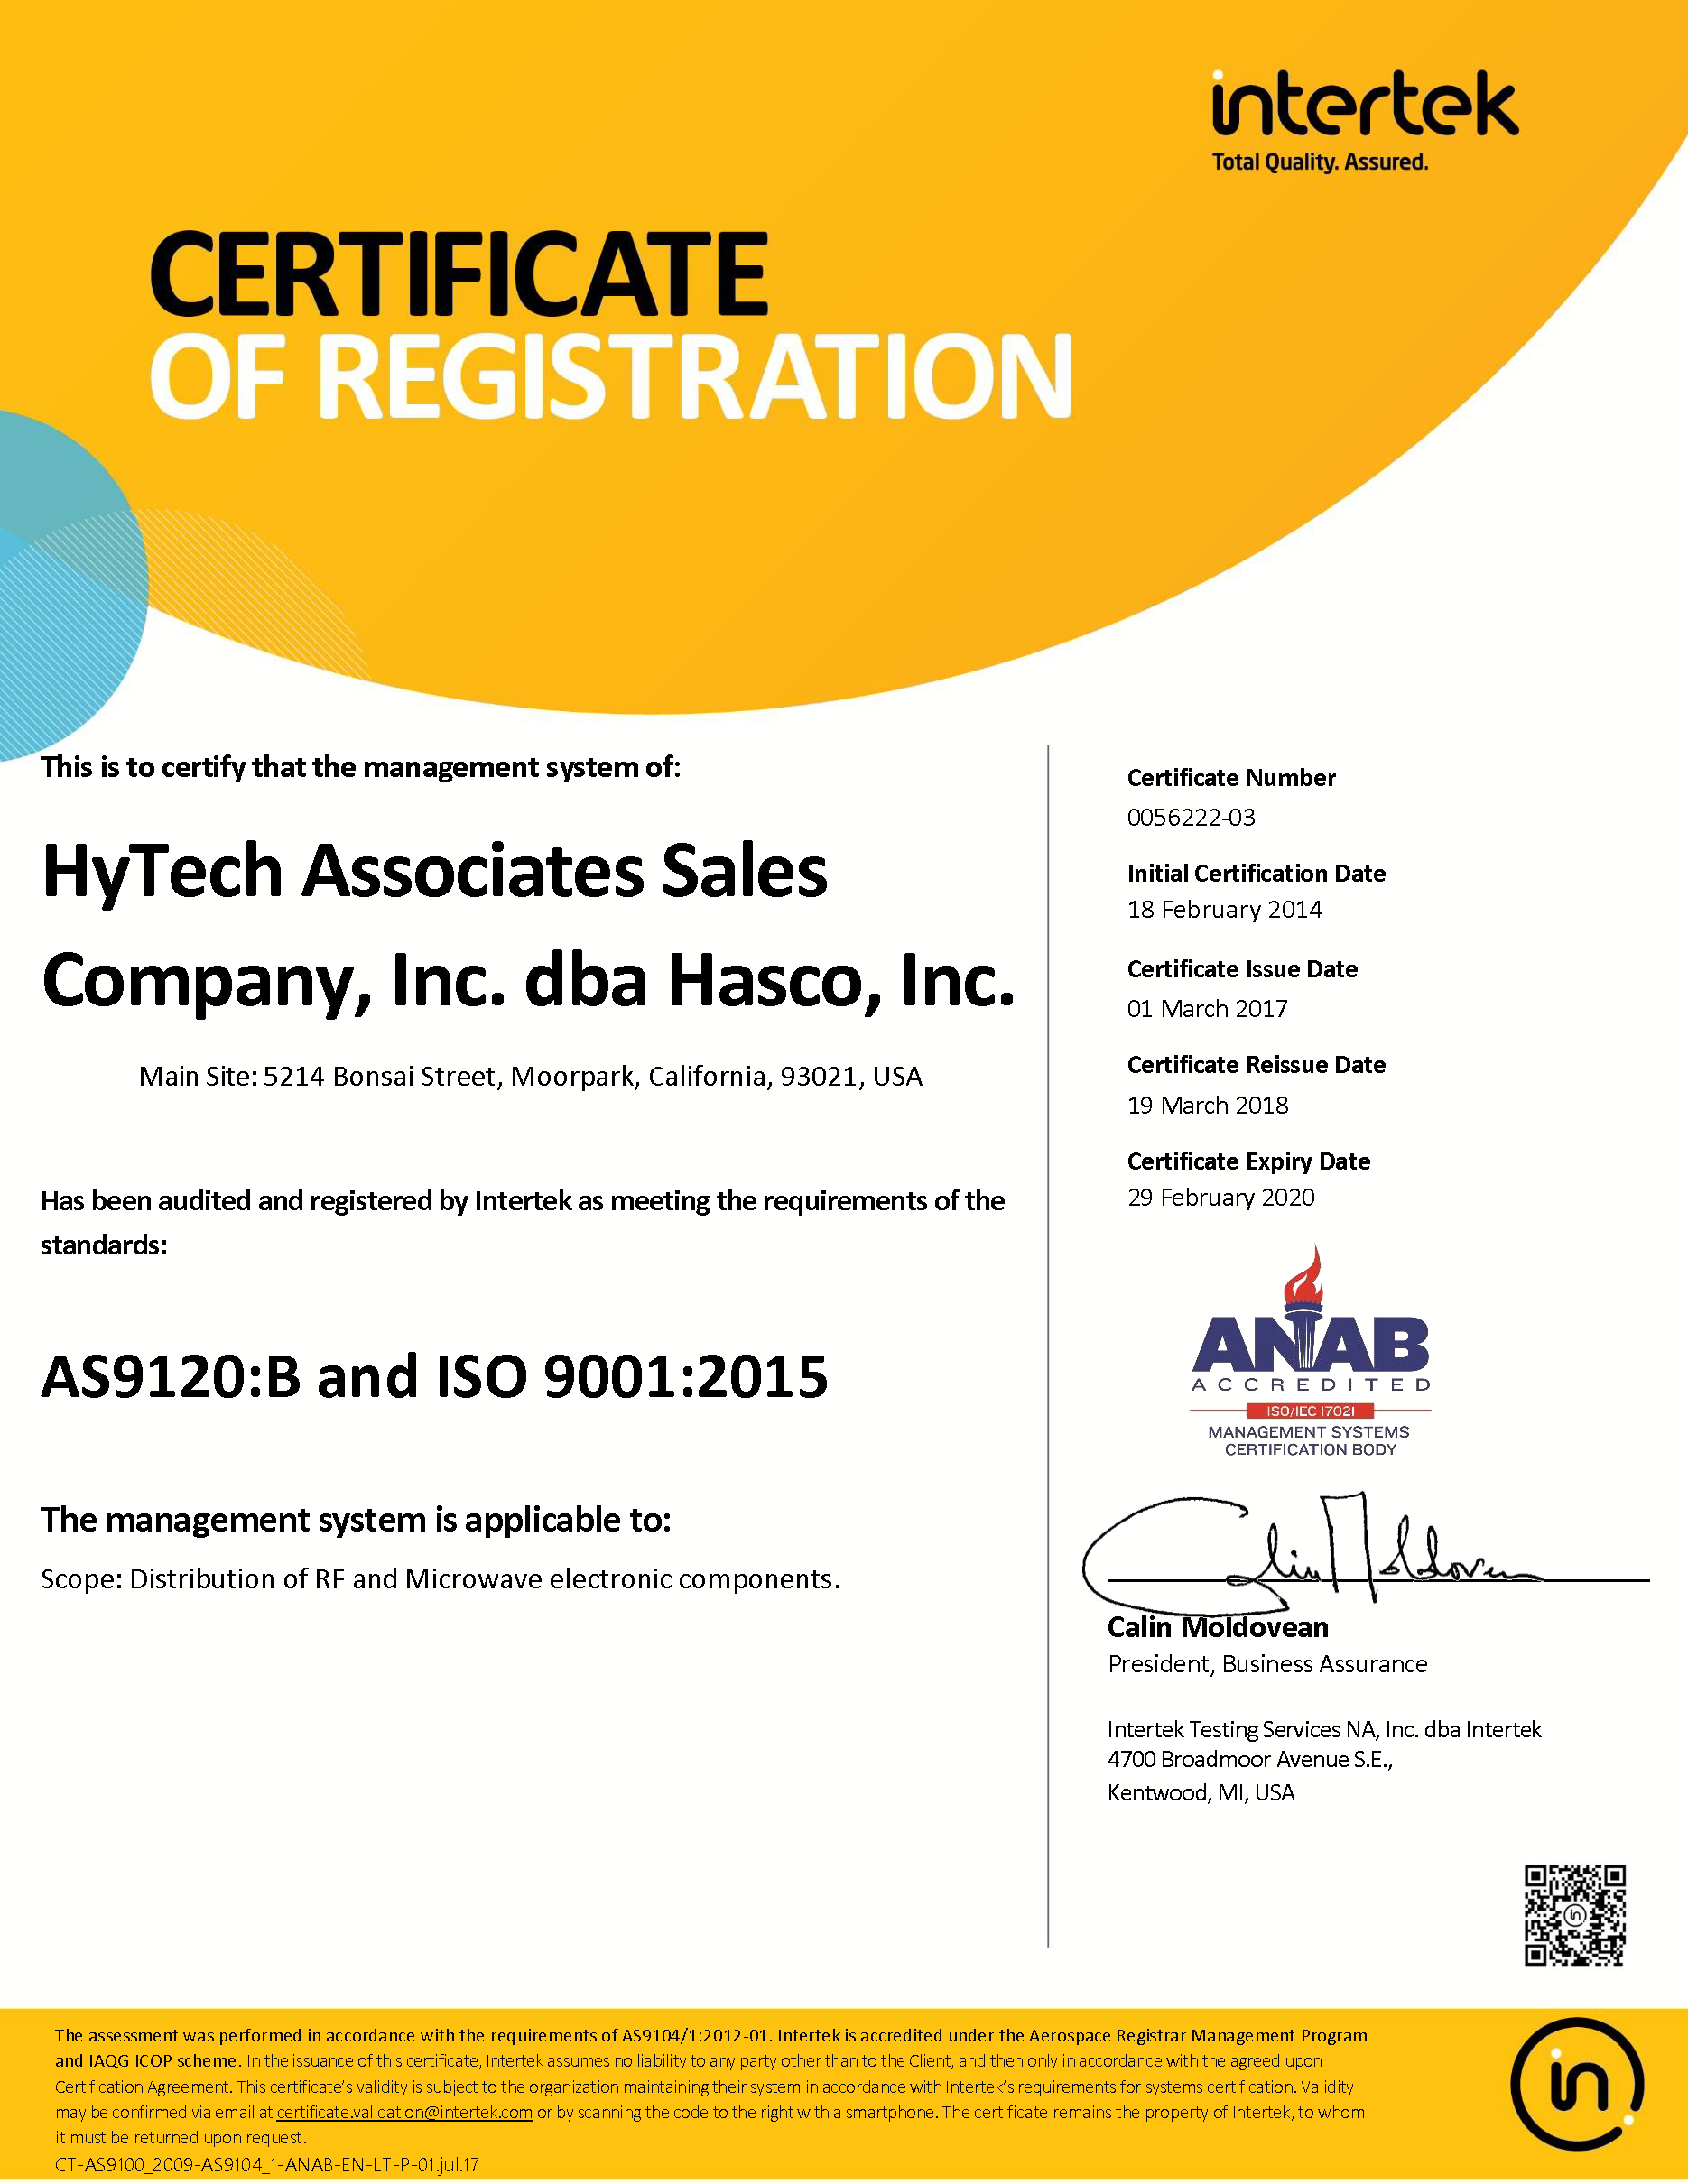 intertek-certificate-as9120b-exp-02-29-20.png